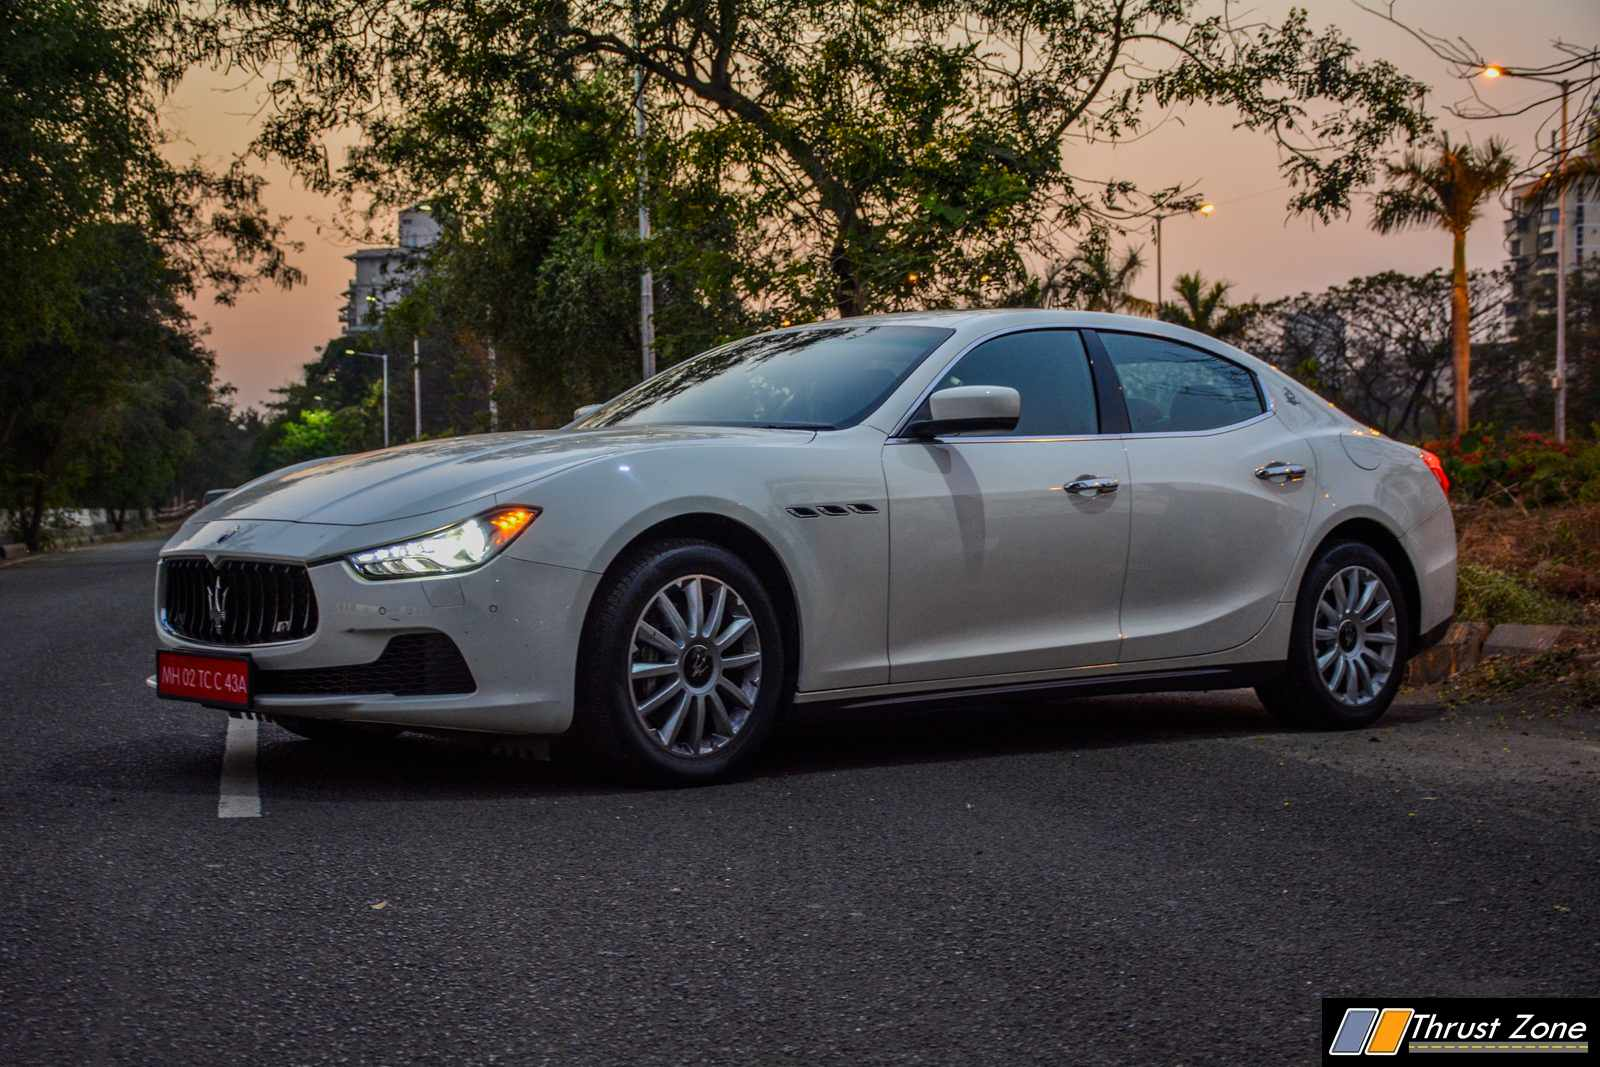 https://www.thrustzone.com/wp-content/uploads/2018/02/Maserati-Ghibli-India-diesel-review-29.jpg